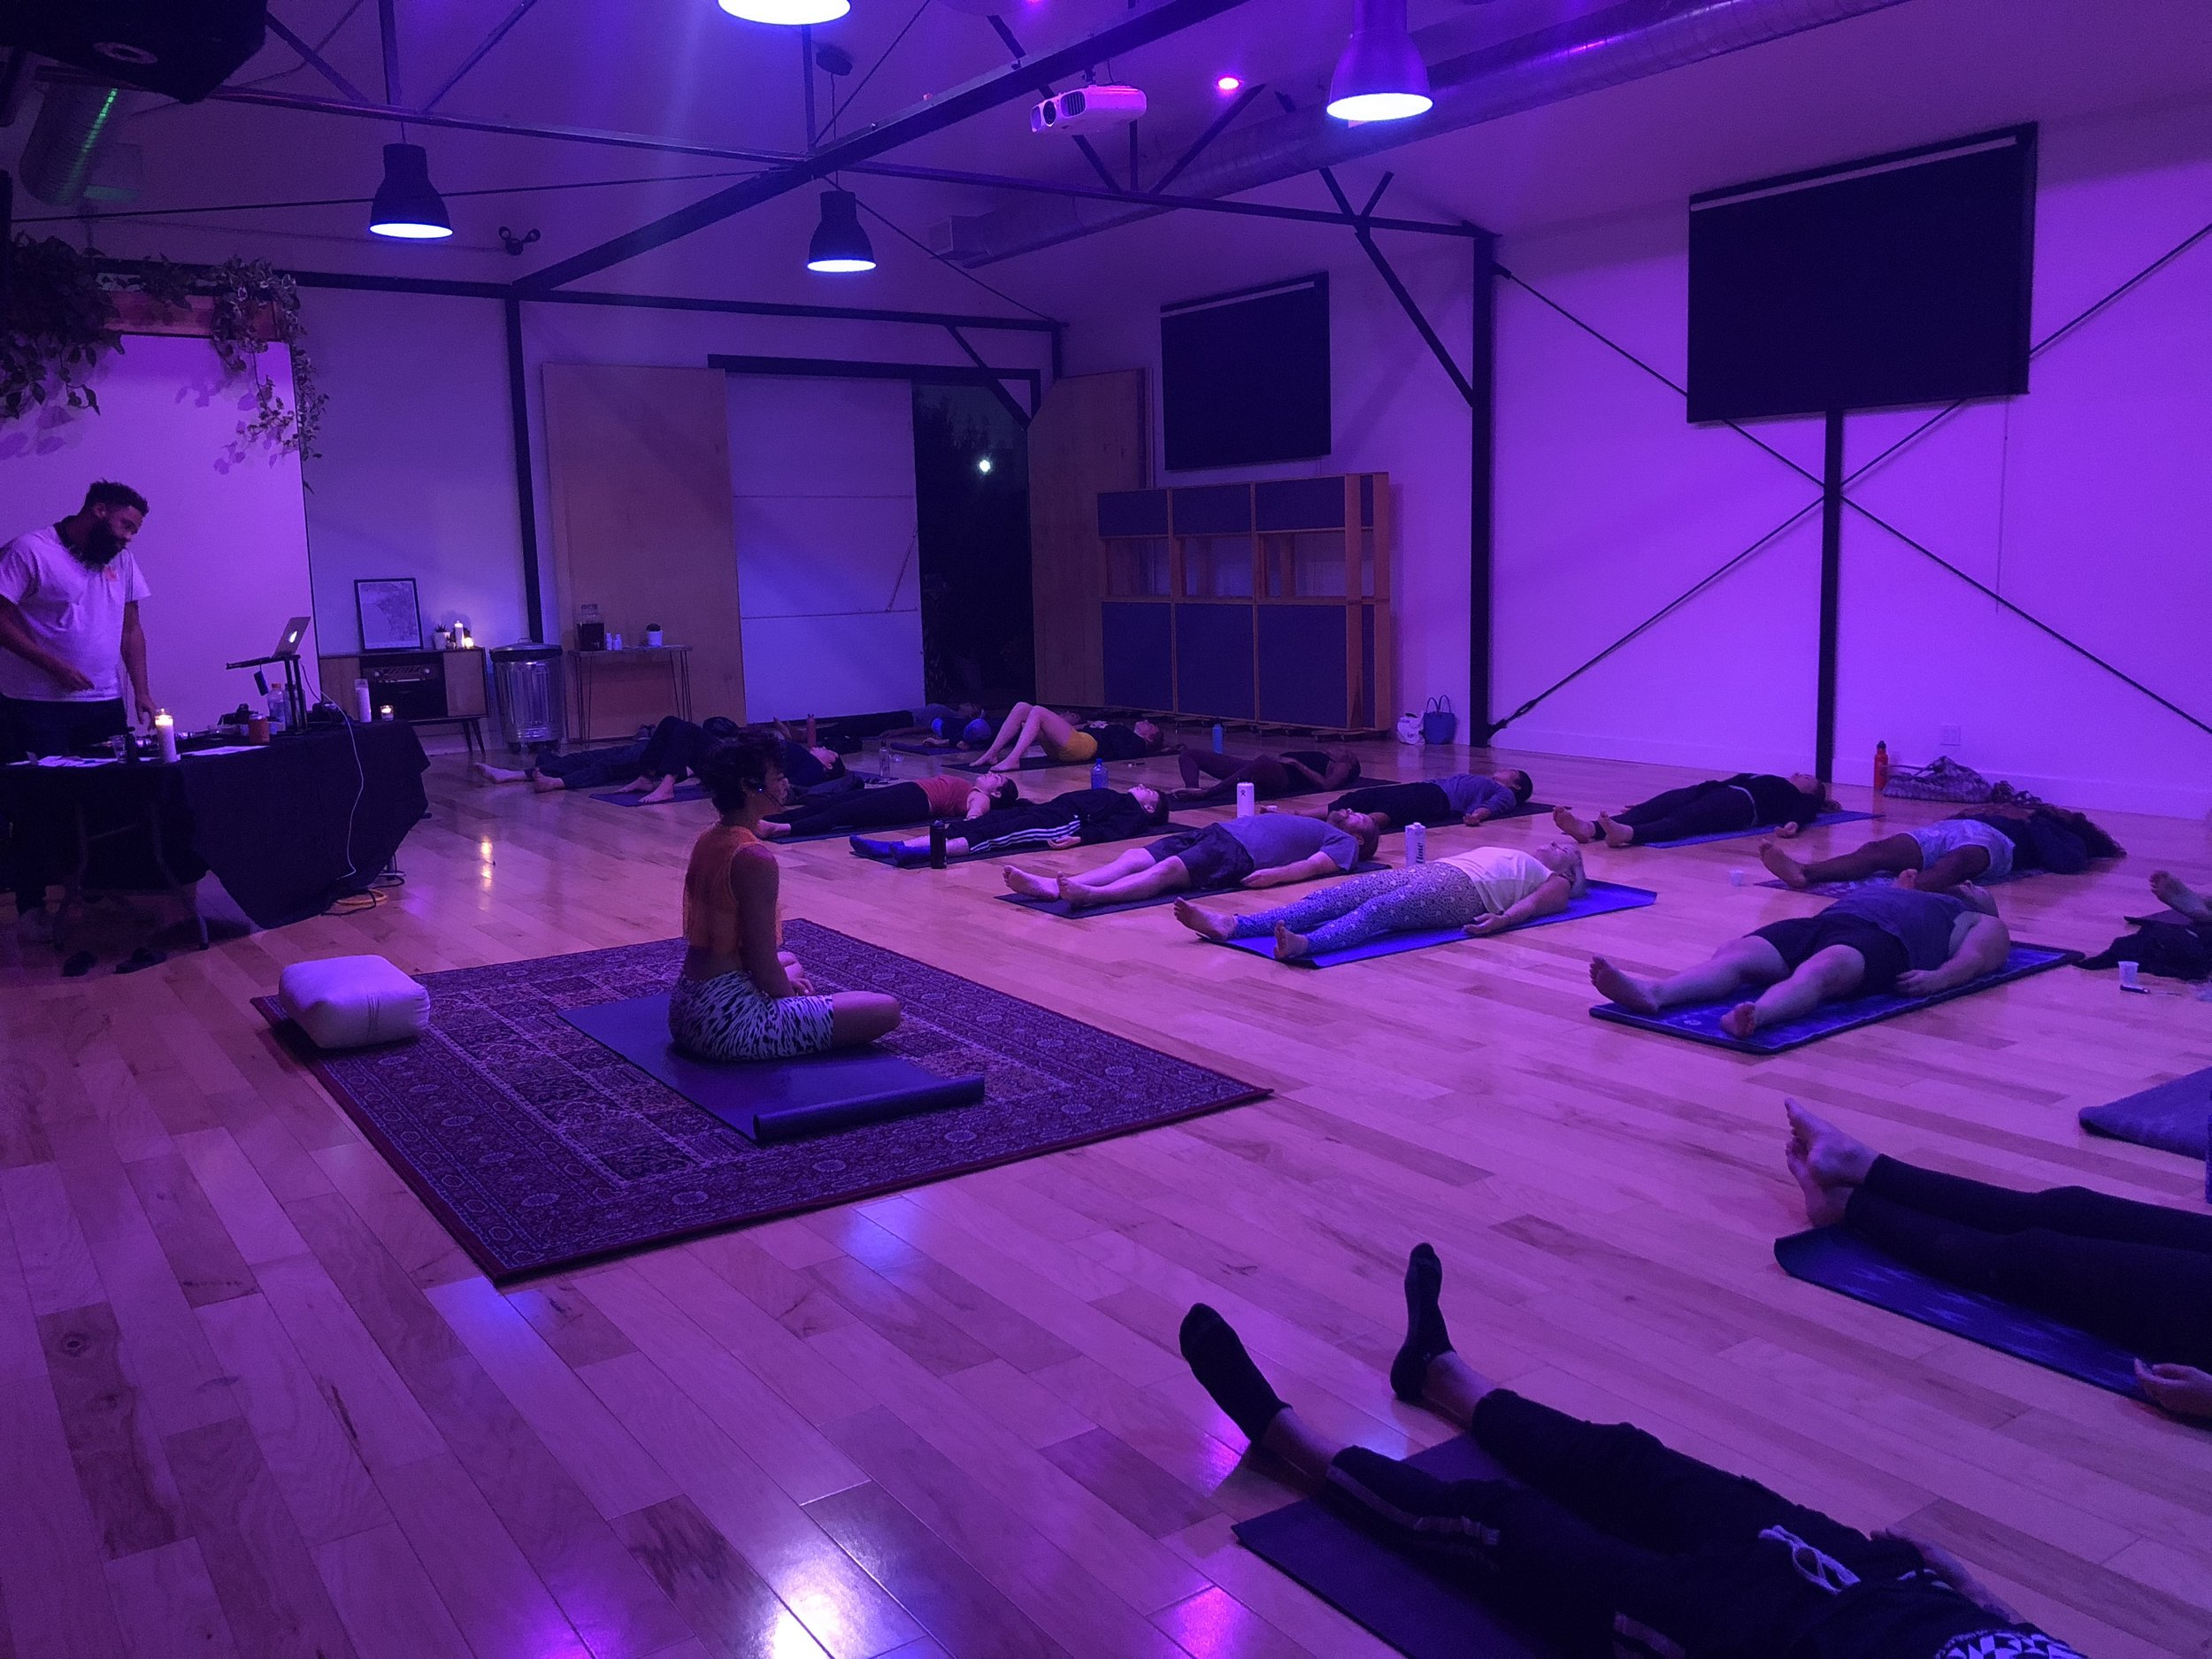 STONED YOGA MOVED LA